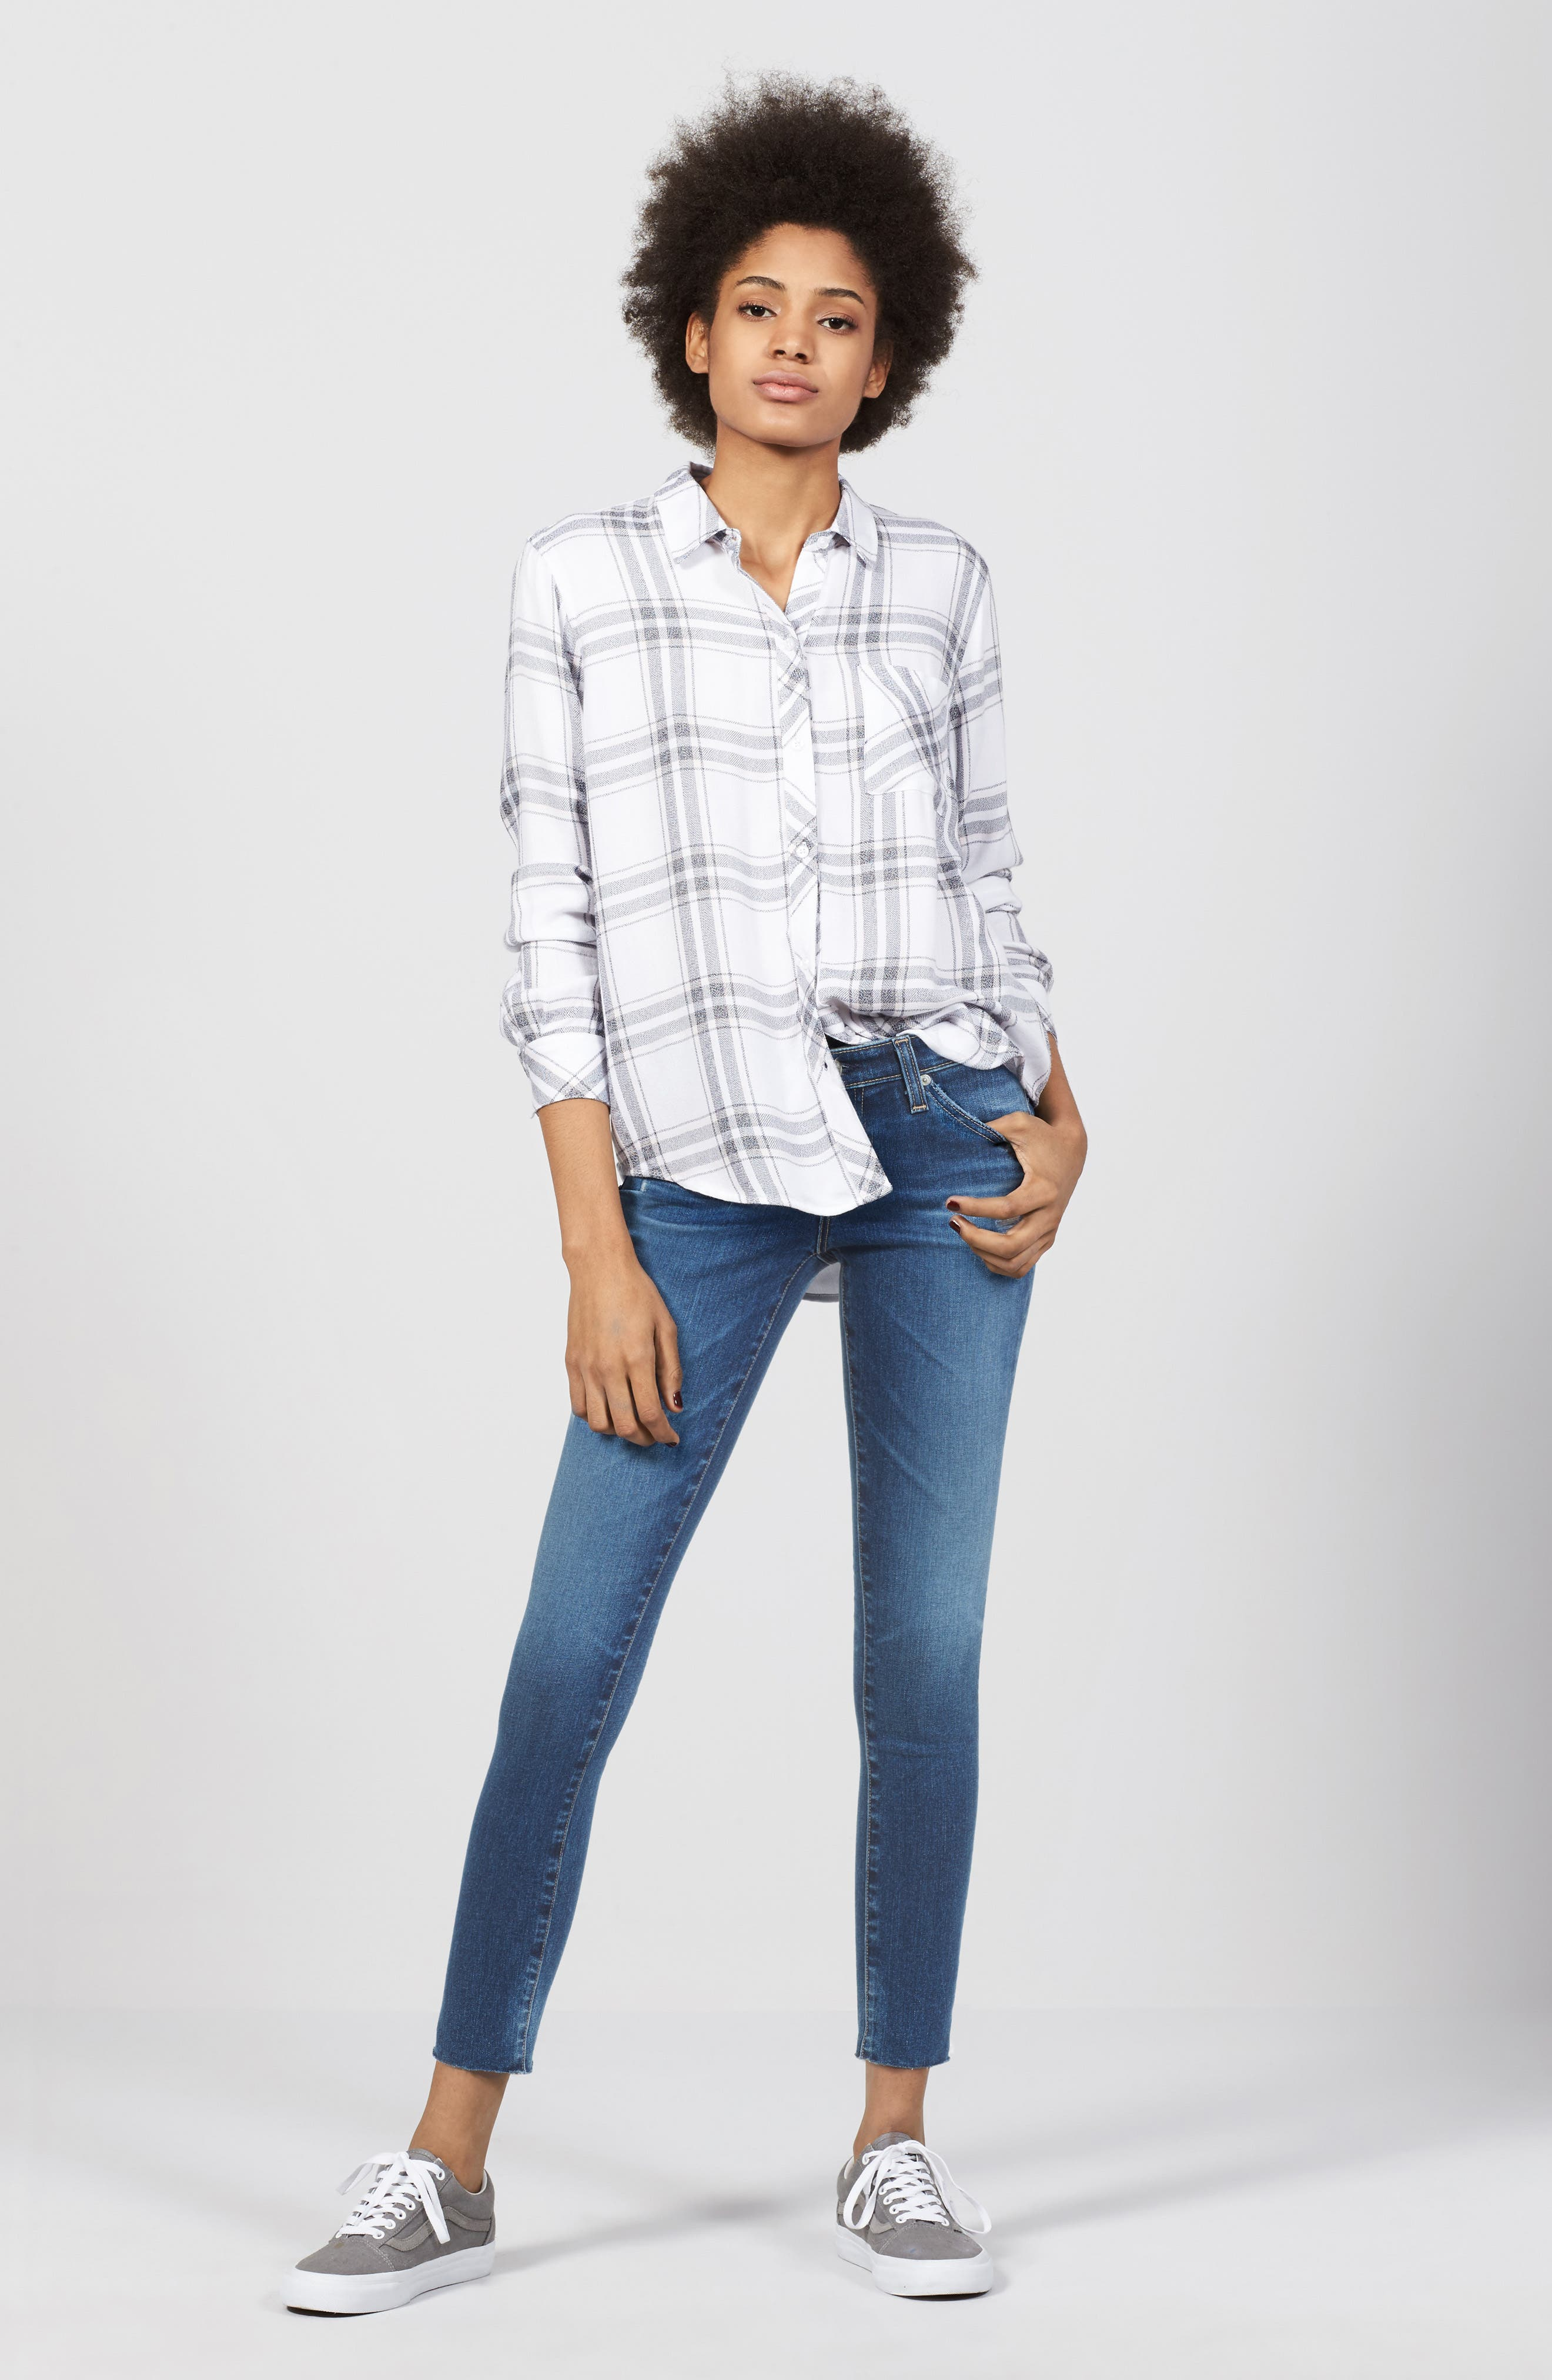 Rails Shirt & AG Jeans Outfit with Accessories